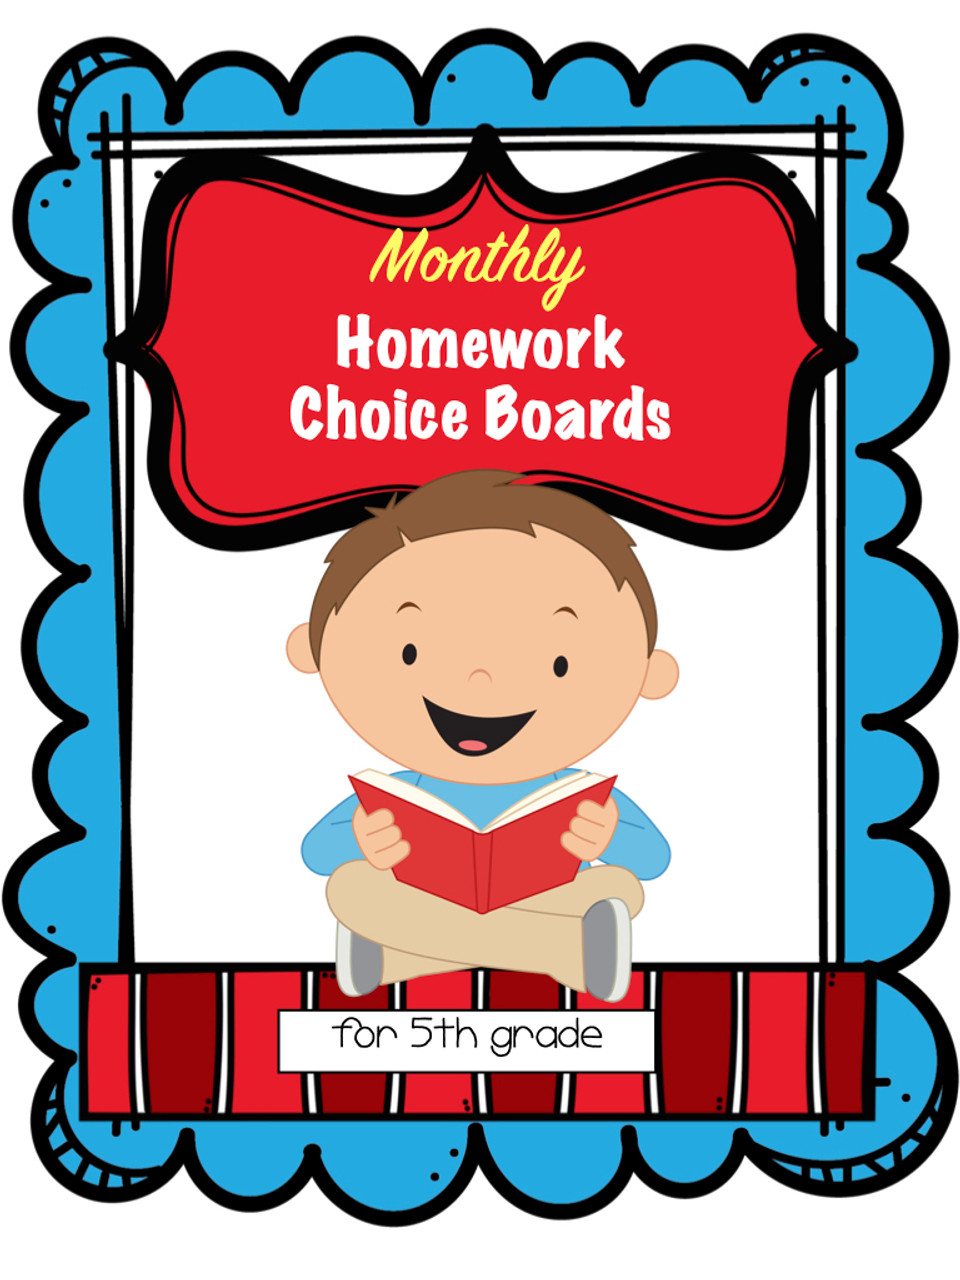 5th Grade Homework Choice Boards for All Year